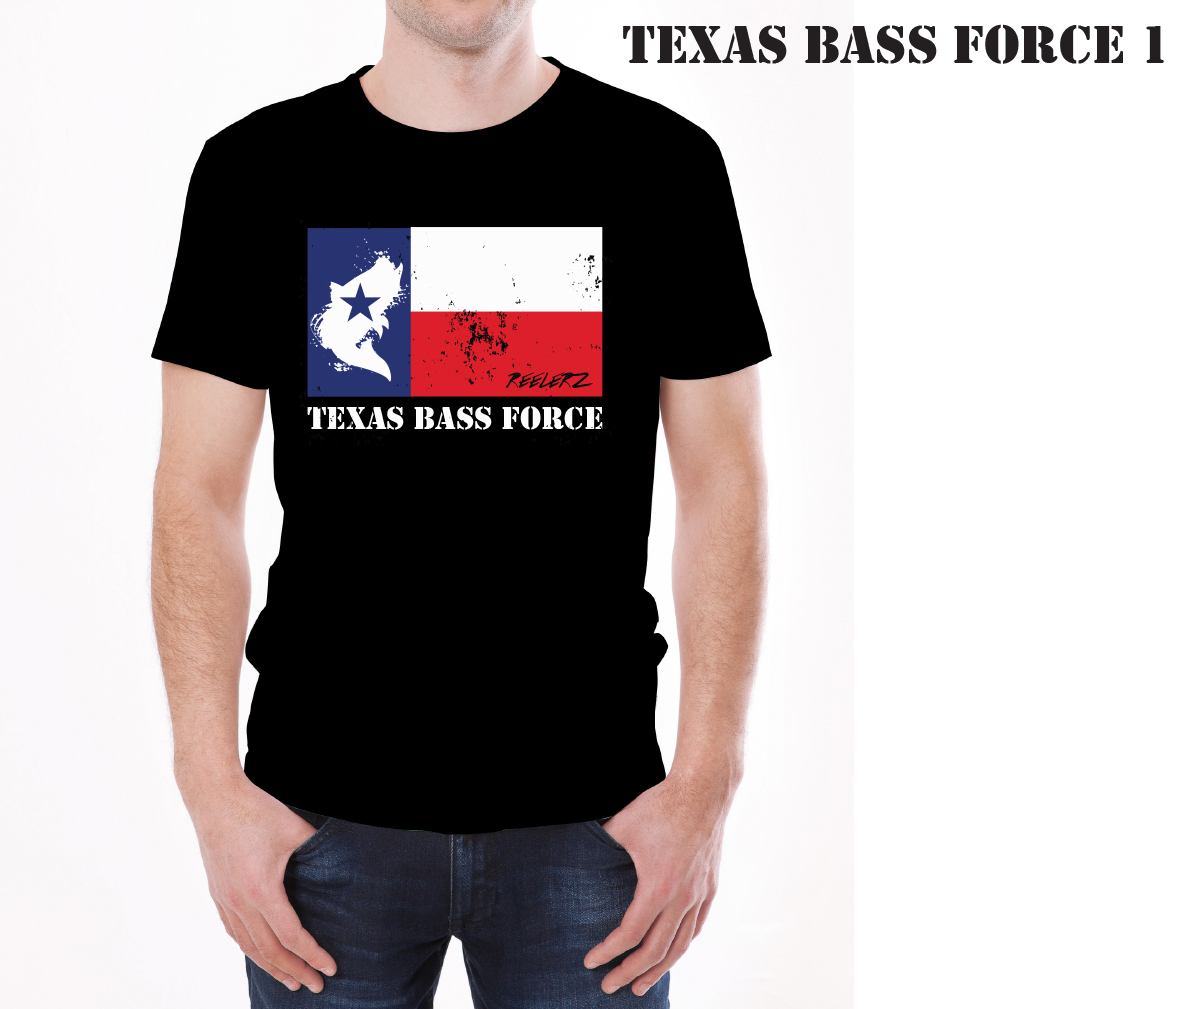 Texas Bass Force One